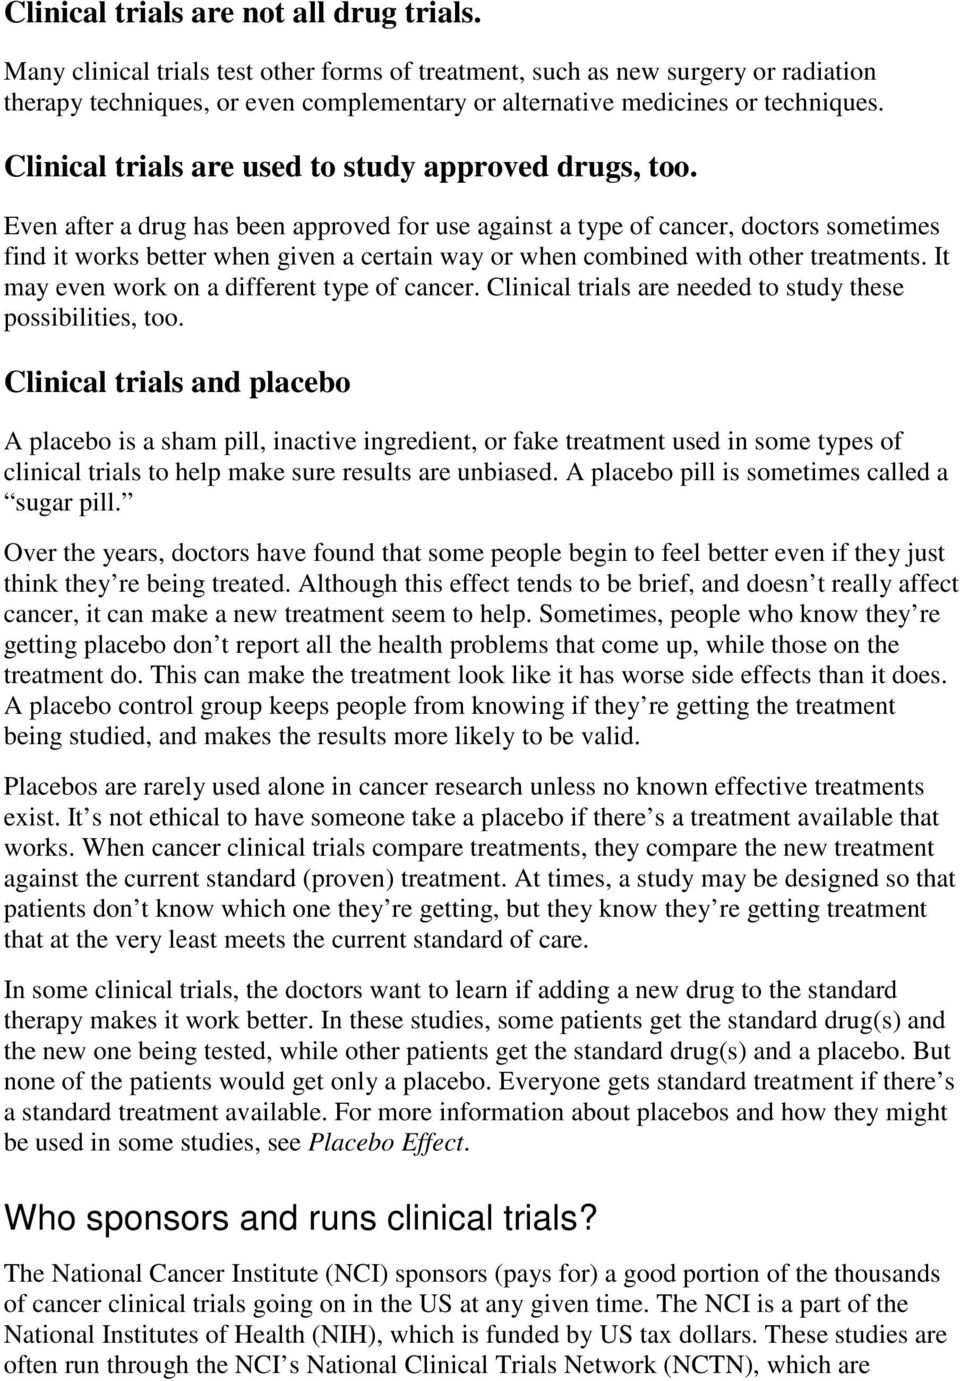 Clinical Trials: What You Need to Know - PDF